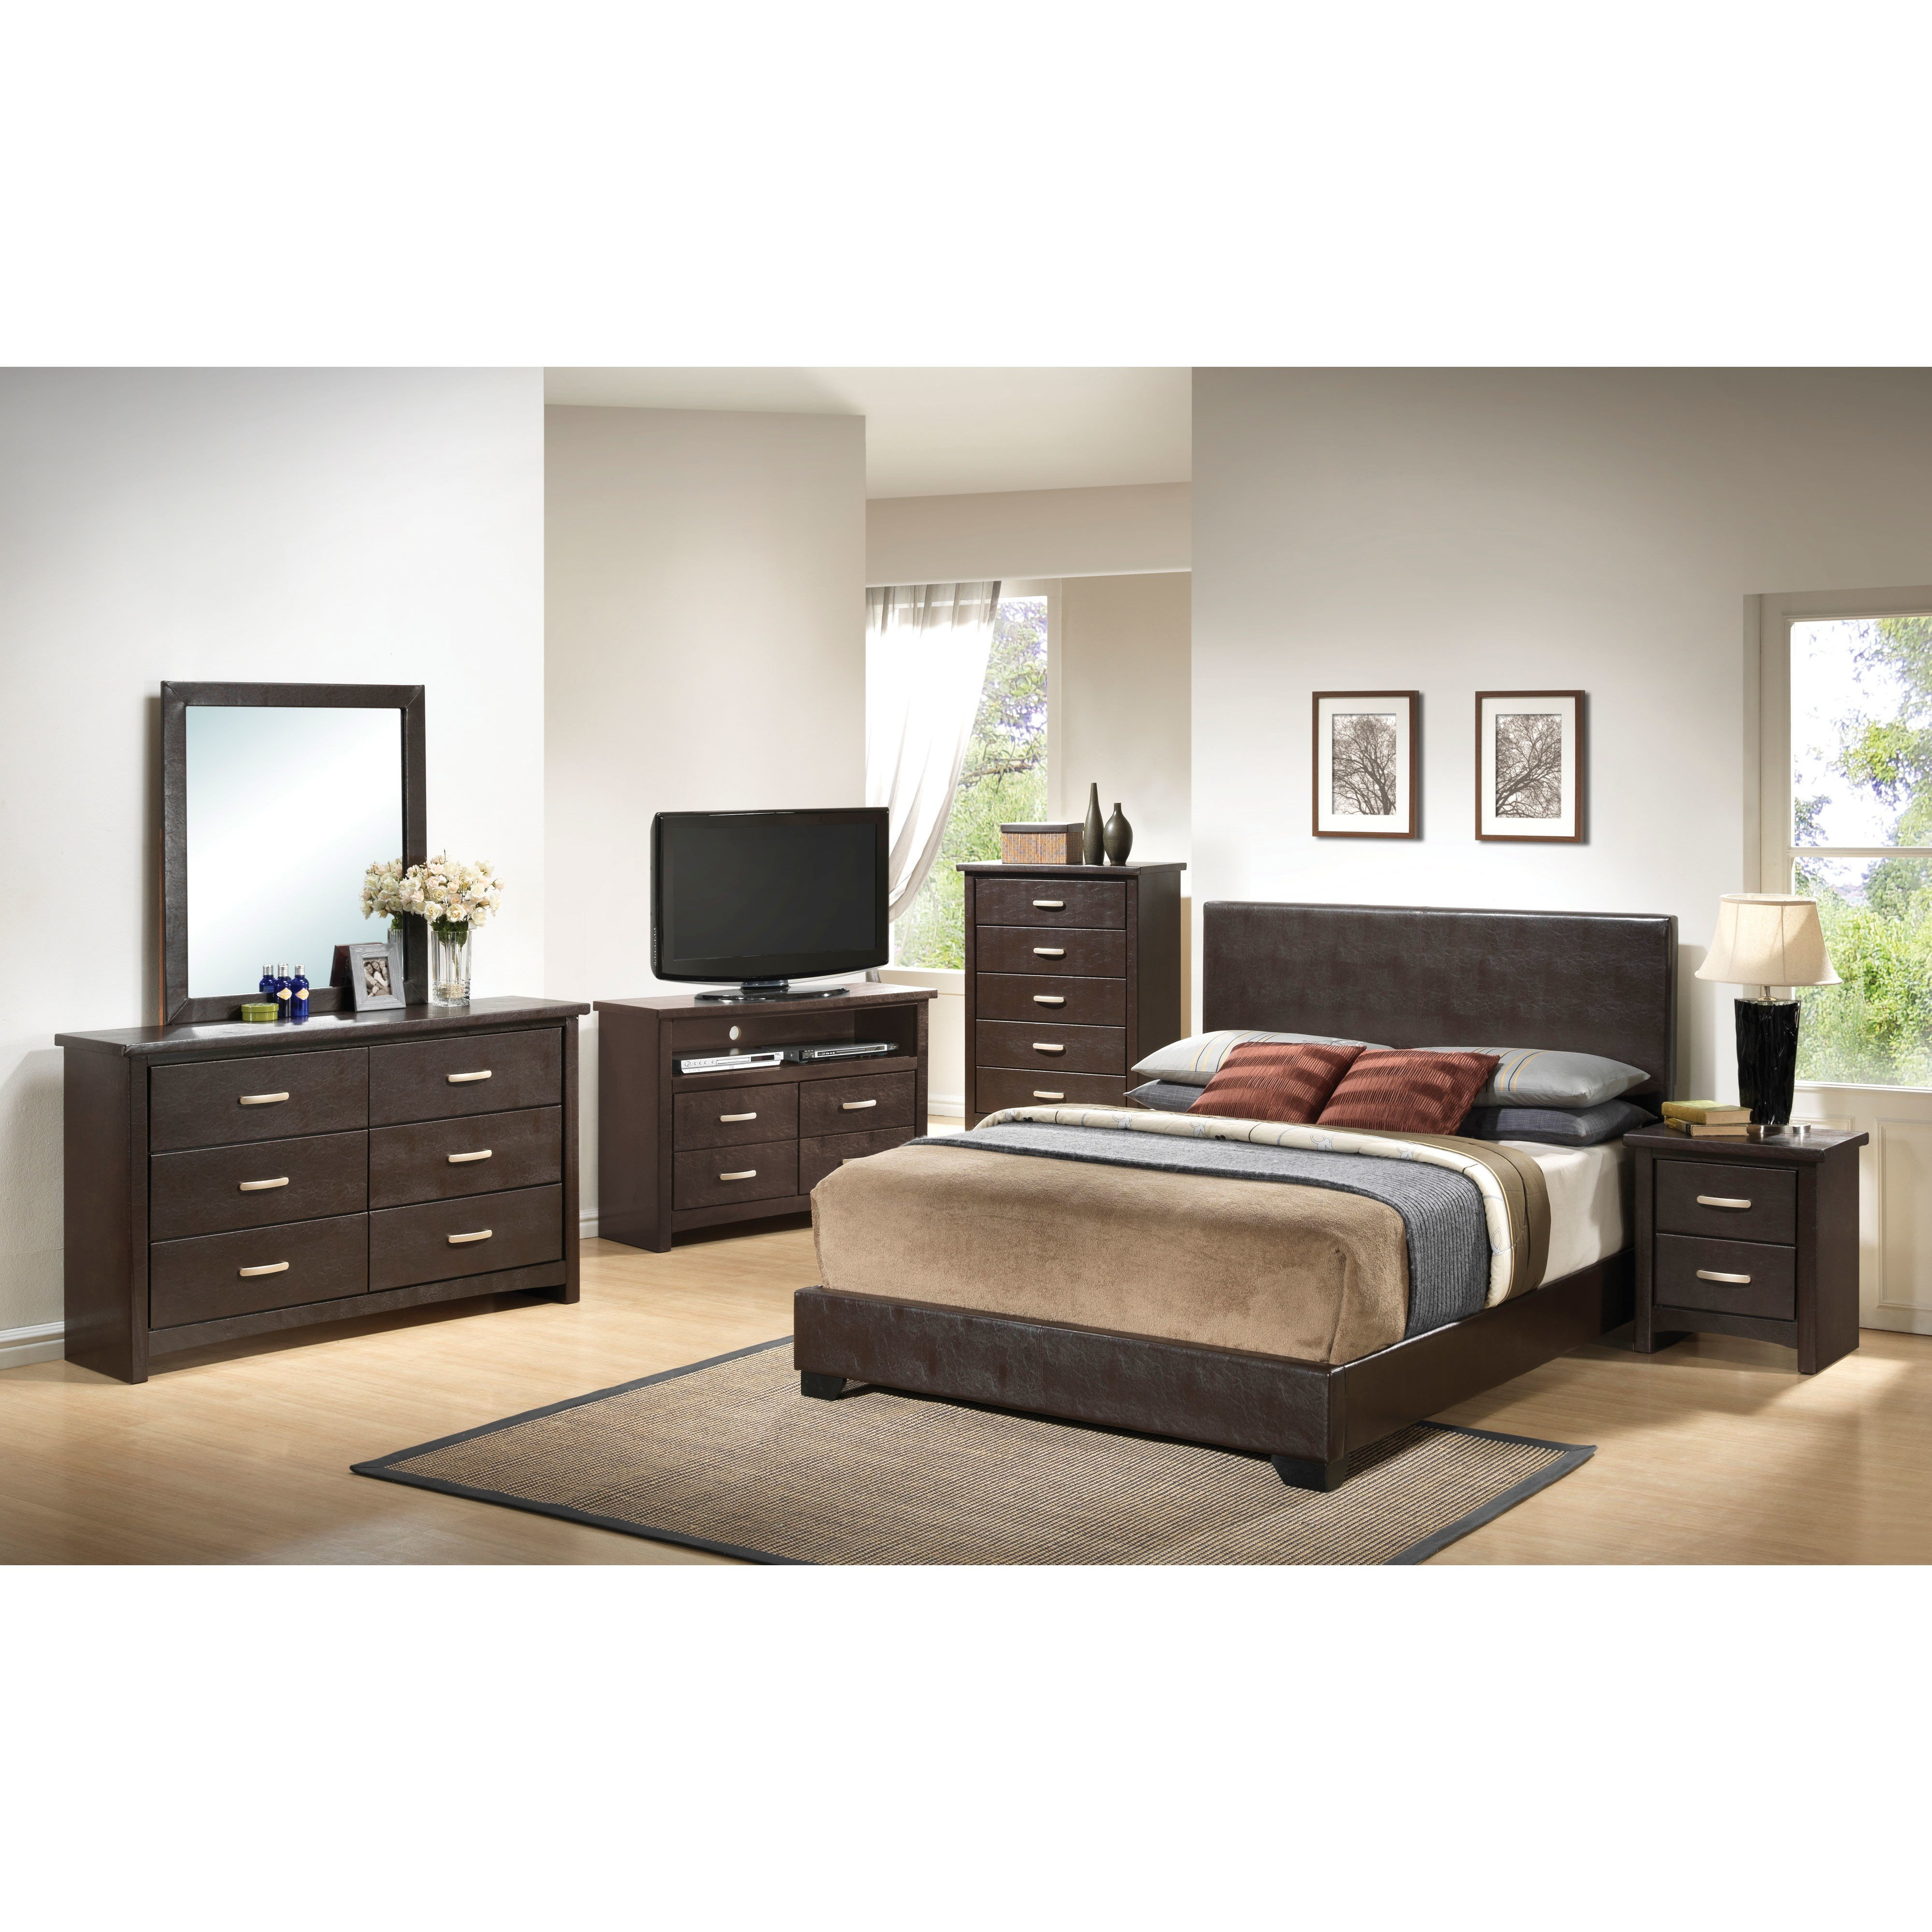 Best Black White Bedroom Furniture Sale Cheap Bedroom Sets Me With Pictures